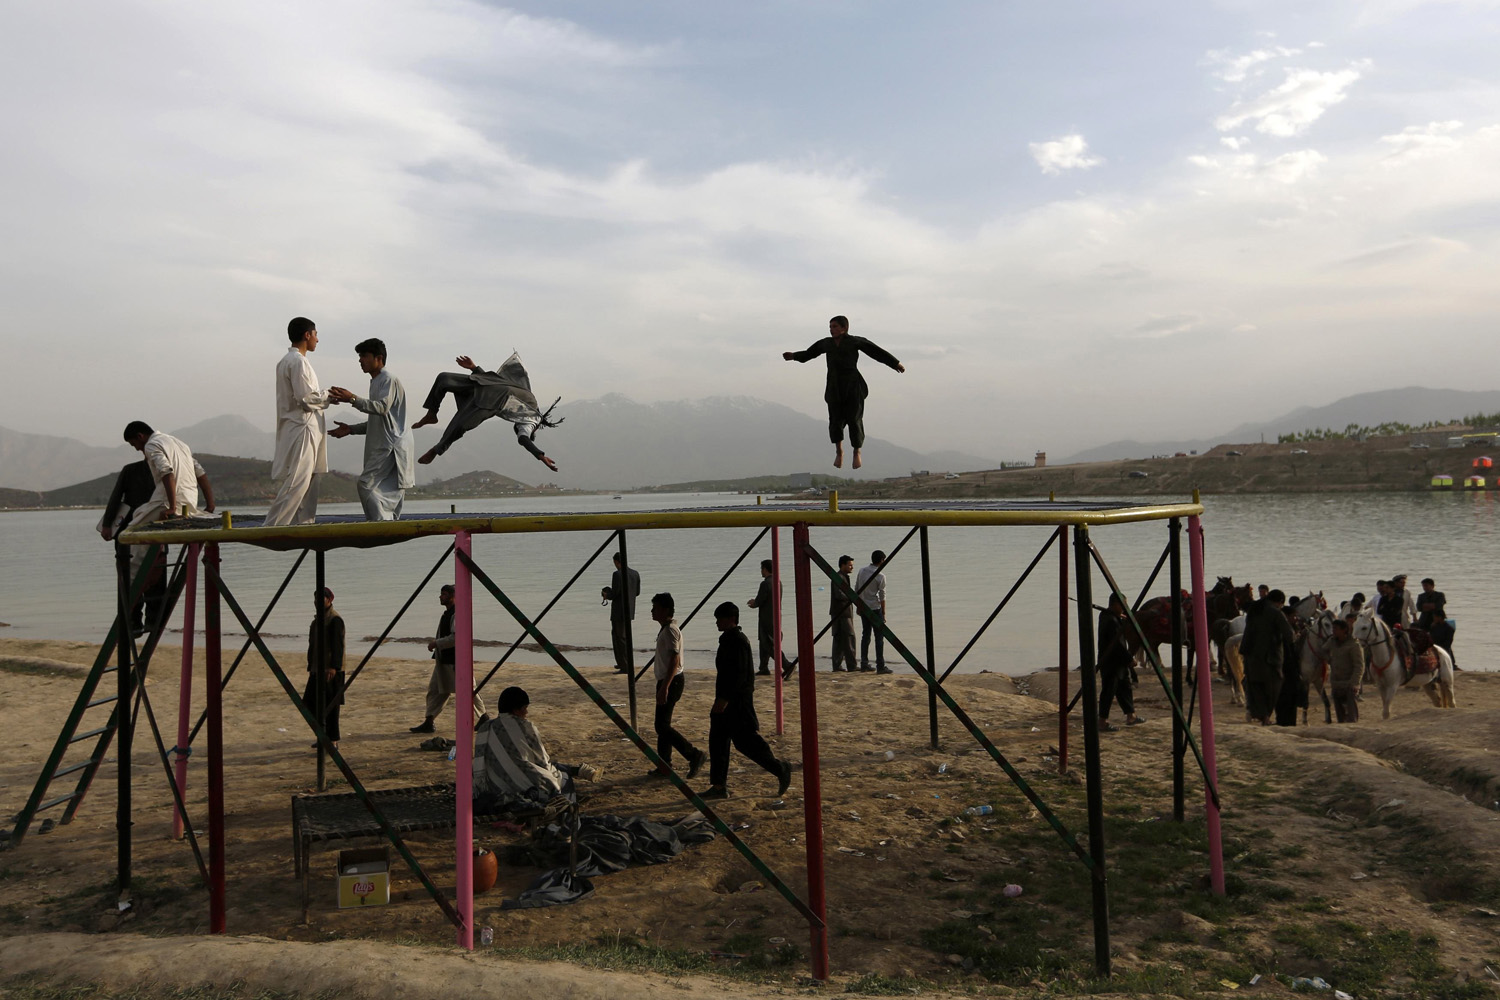 Apr. 28, 2014. Afghans play on a trampoline along Qargha Lake, on the outskirts of Kabul.